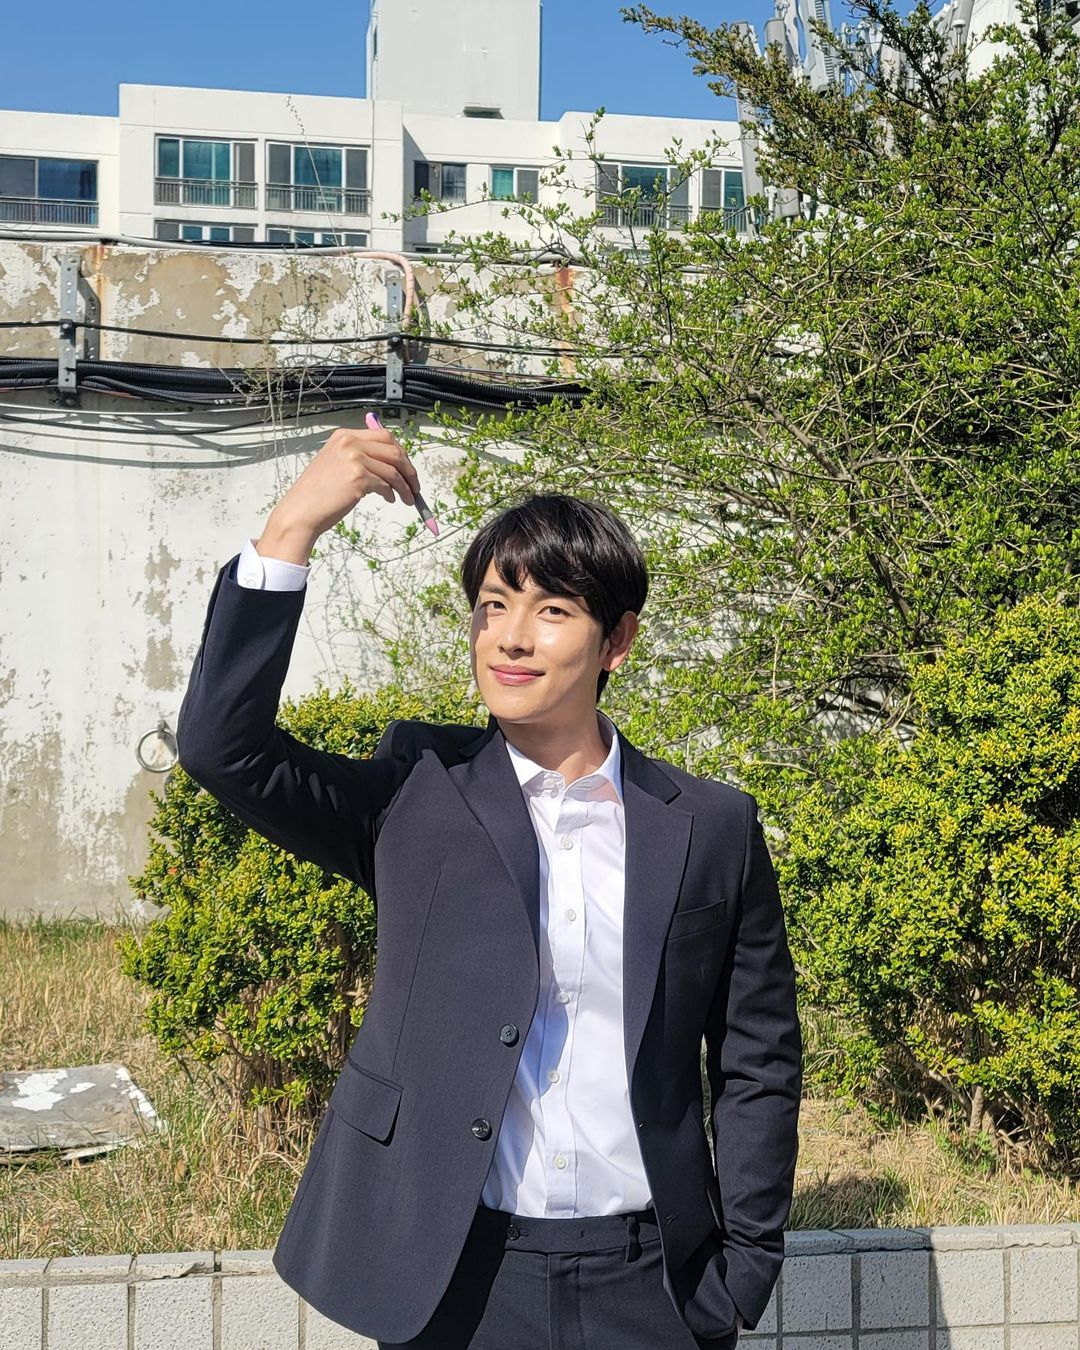 K-pop idols who are also actors: Im Si Wan